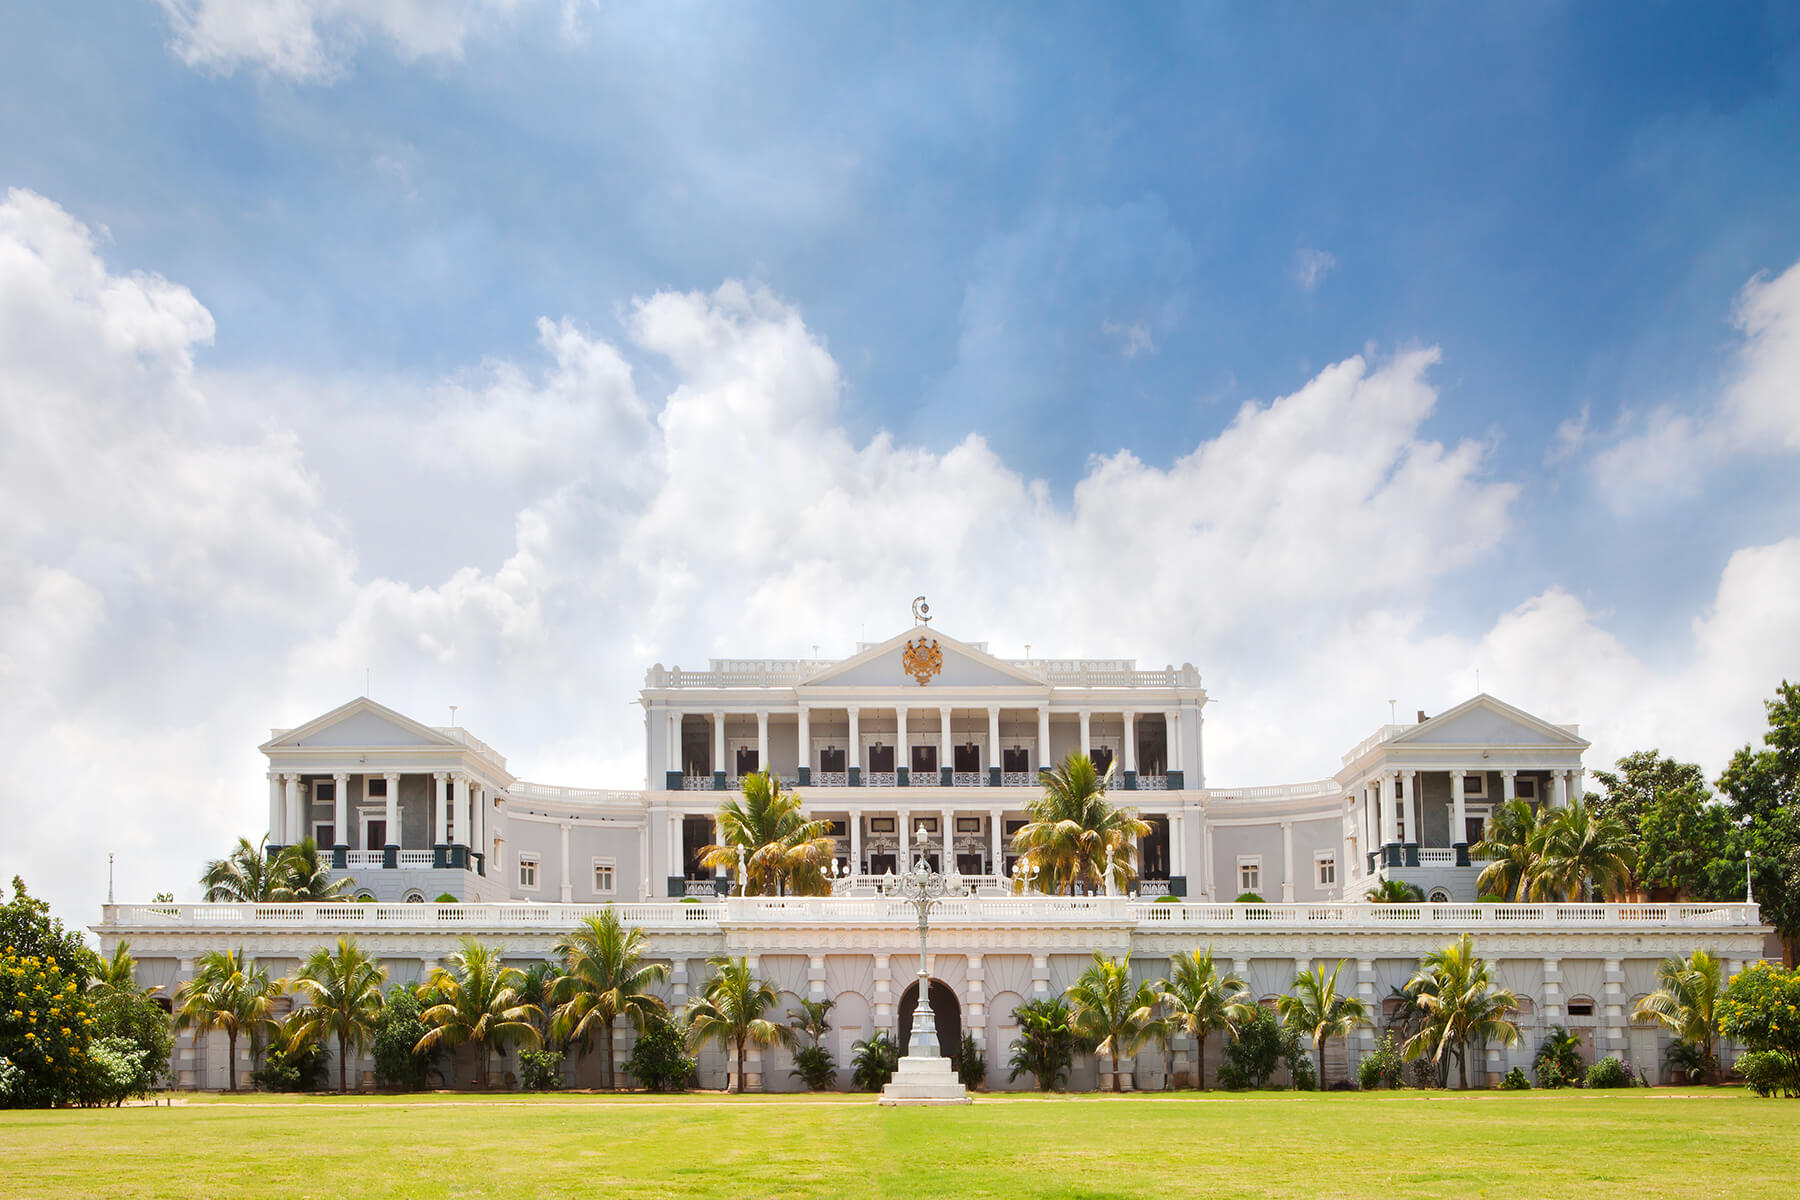 Accommodations in Hyderabad - The sumptuously renovated heritage property, the Taj Falaknuma Palace, will be our home while we explore the culinary and cultural treasures of Hyderabad, a place of great authenticity too often overlooked by travelers to India.